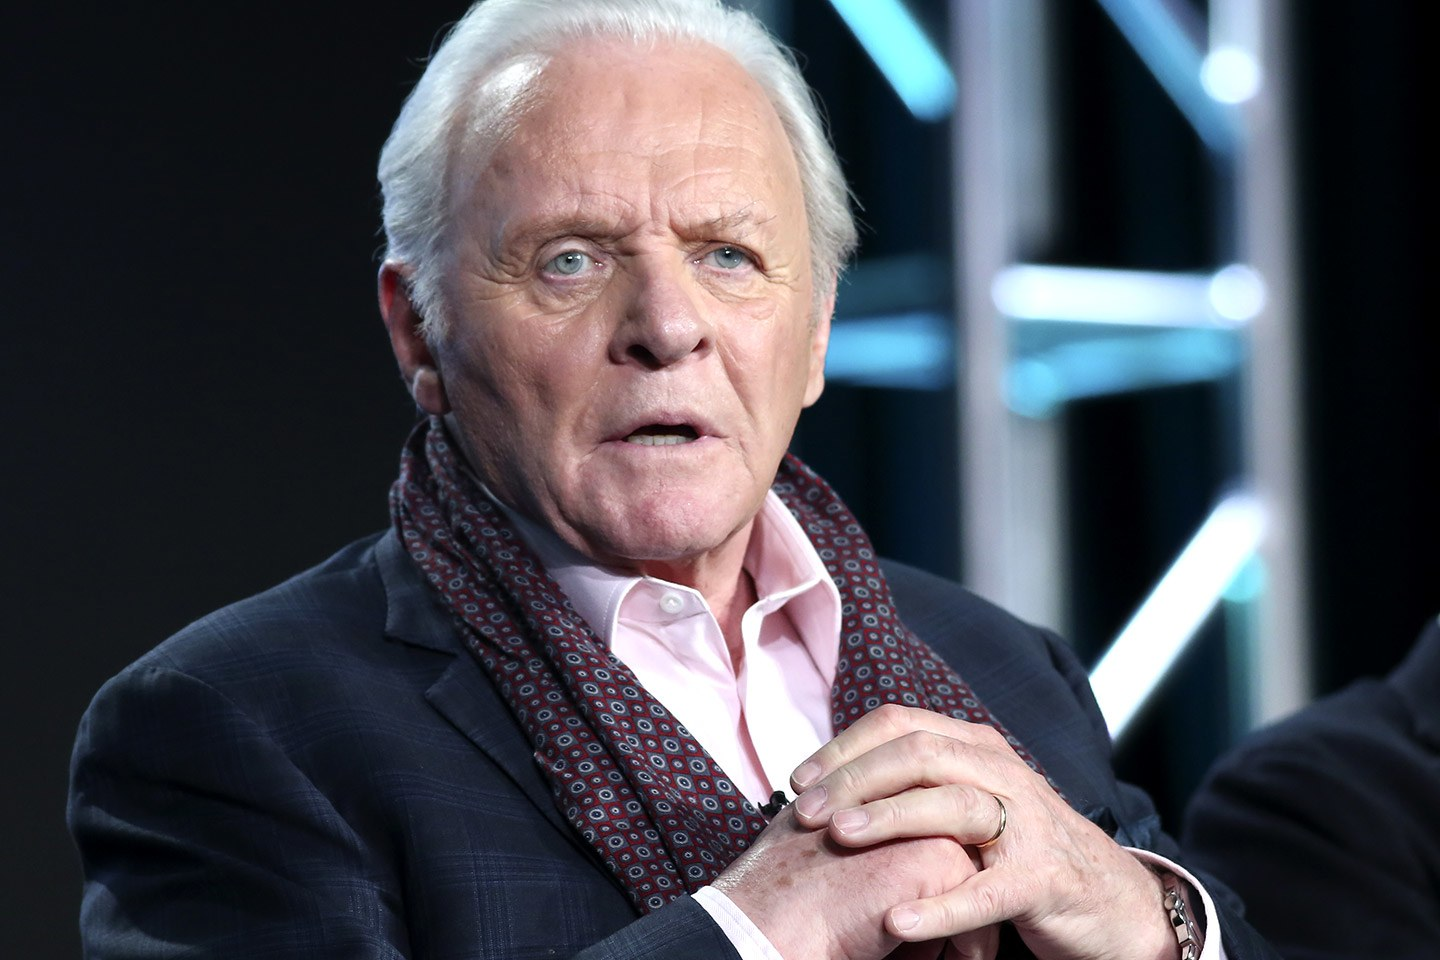 Anthony Hopkins (born 1937 (naturalized American citizen) nude photos 2019